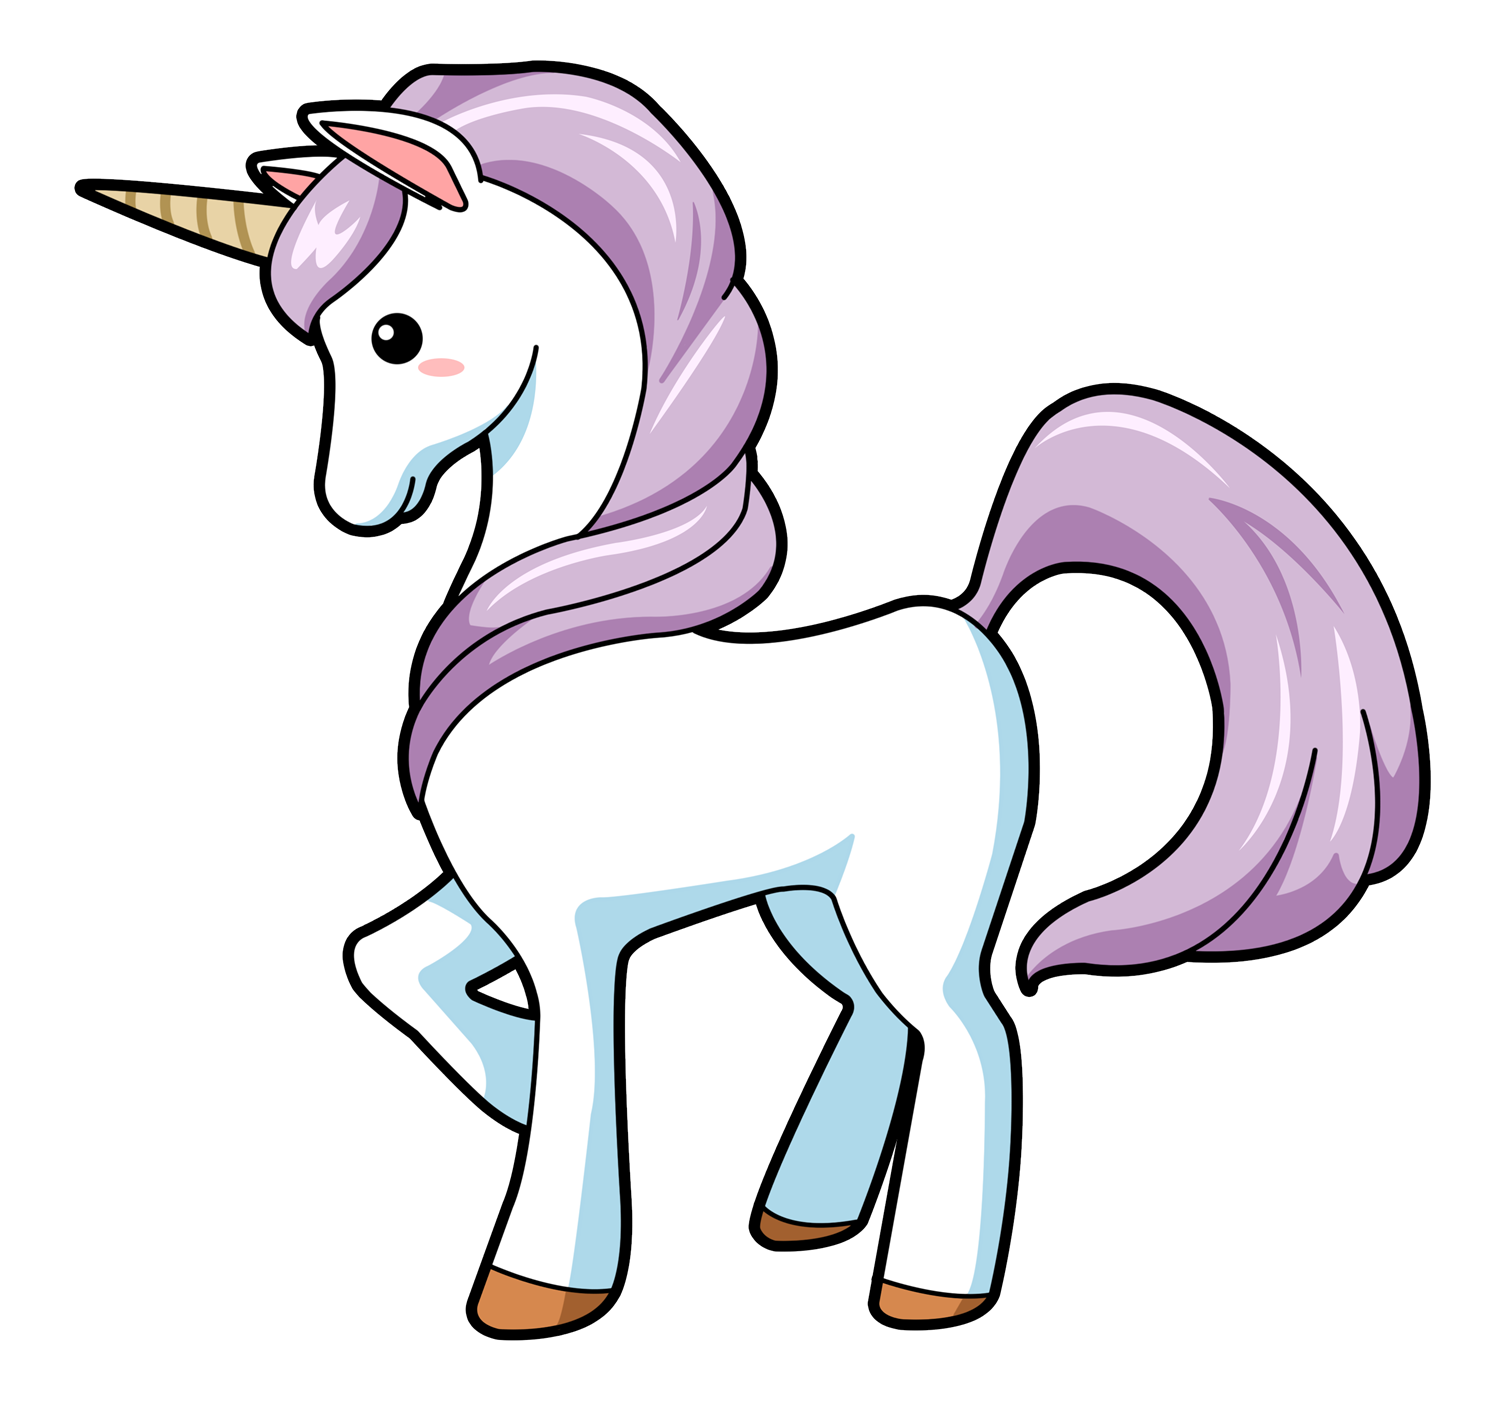 Narwhal clipart purple. Free to use public